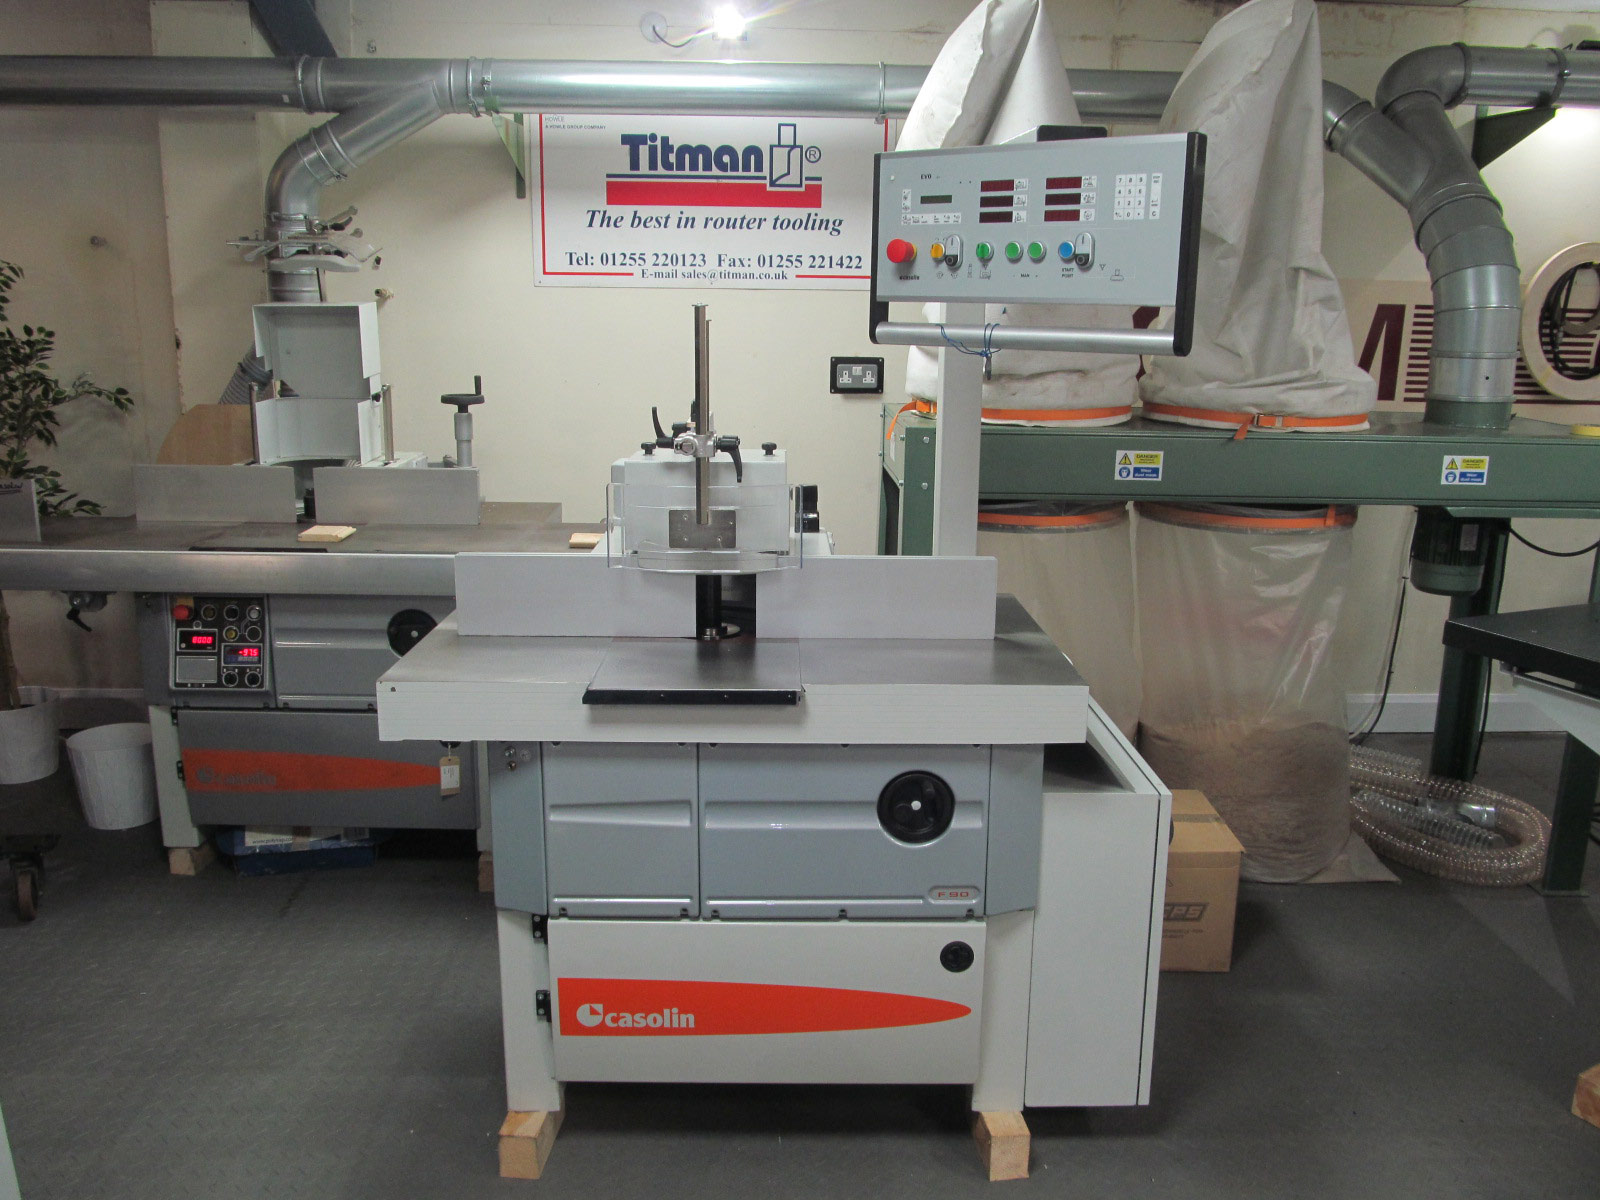 Casolin F90K 2 axis spindle moulder